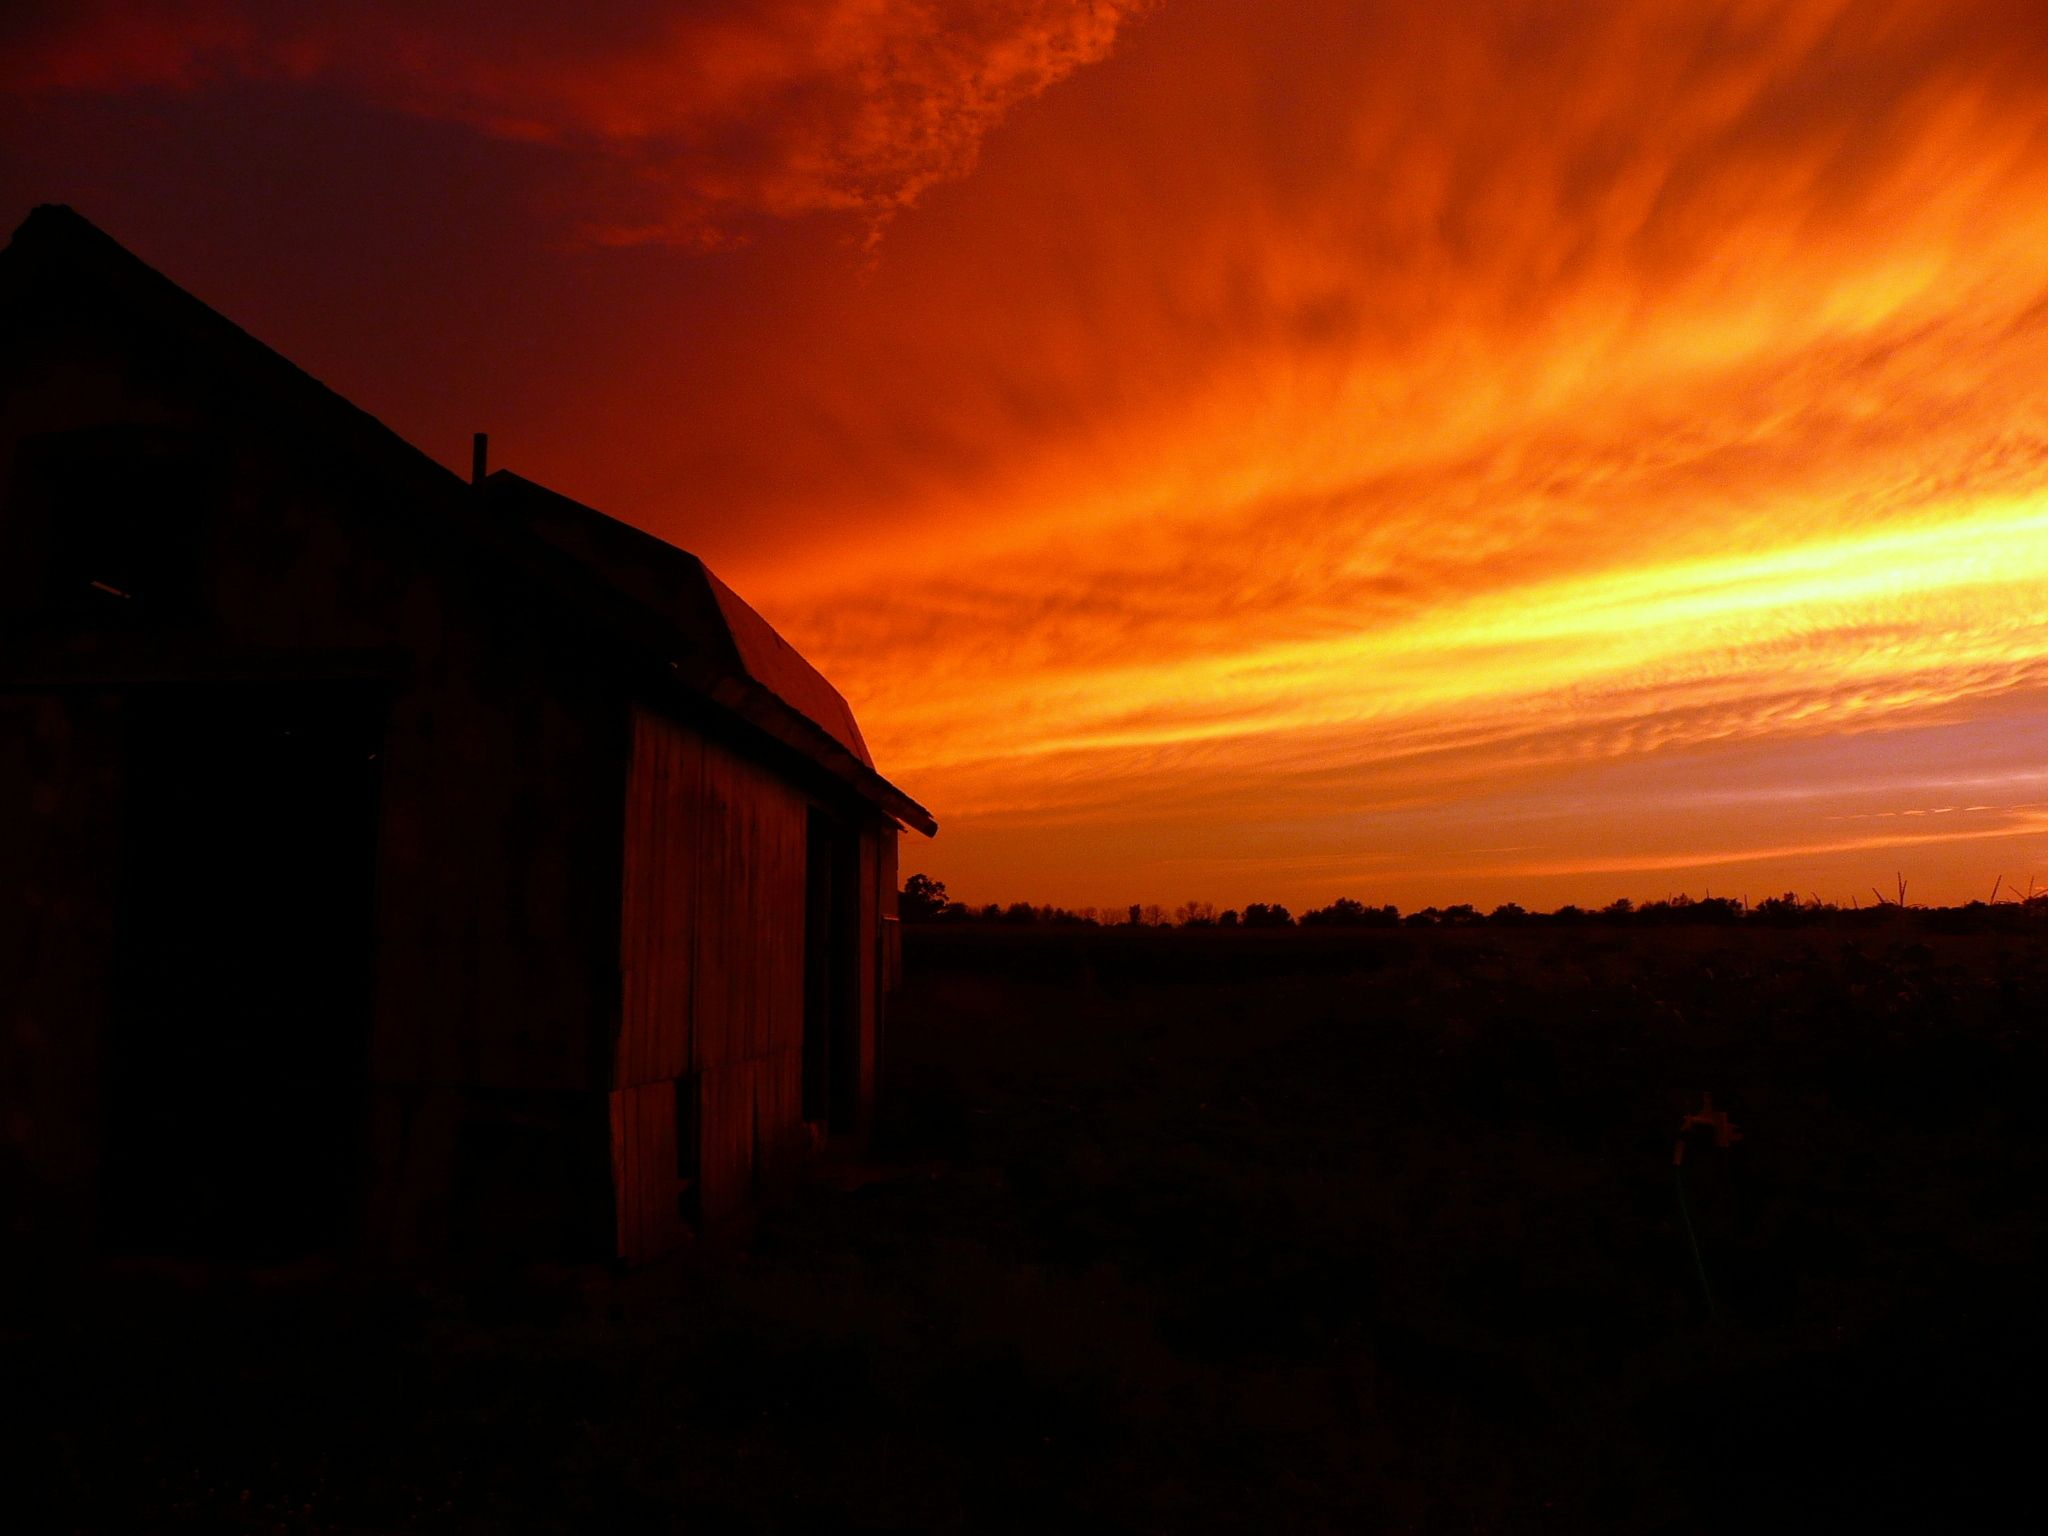 Out back on the farm...I never knew the sky could be so amazing..#michigan #farm #sunset #gorgeous #serenity